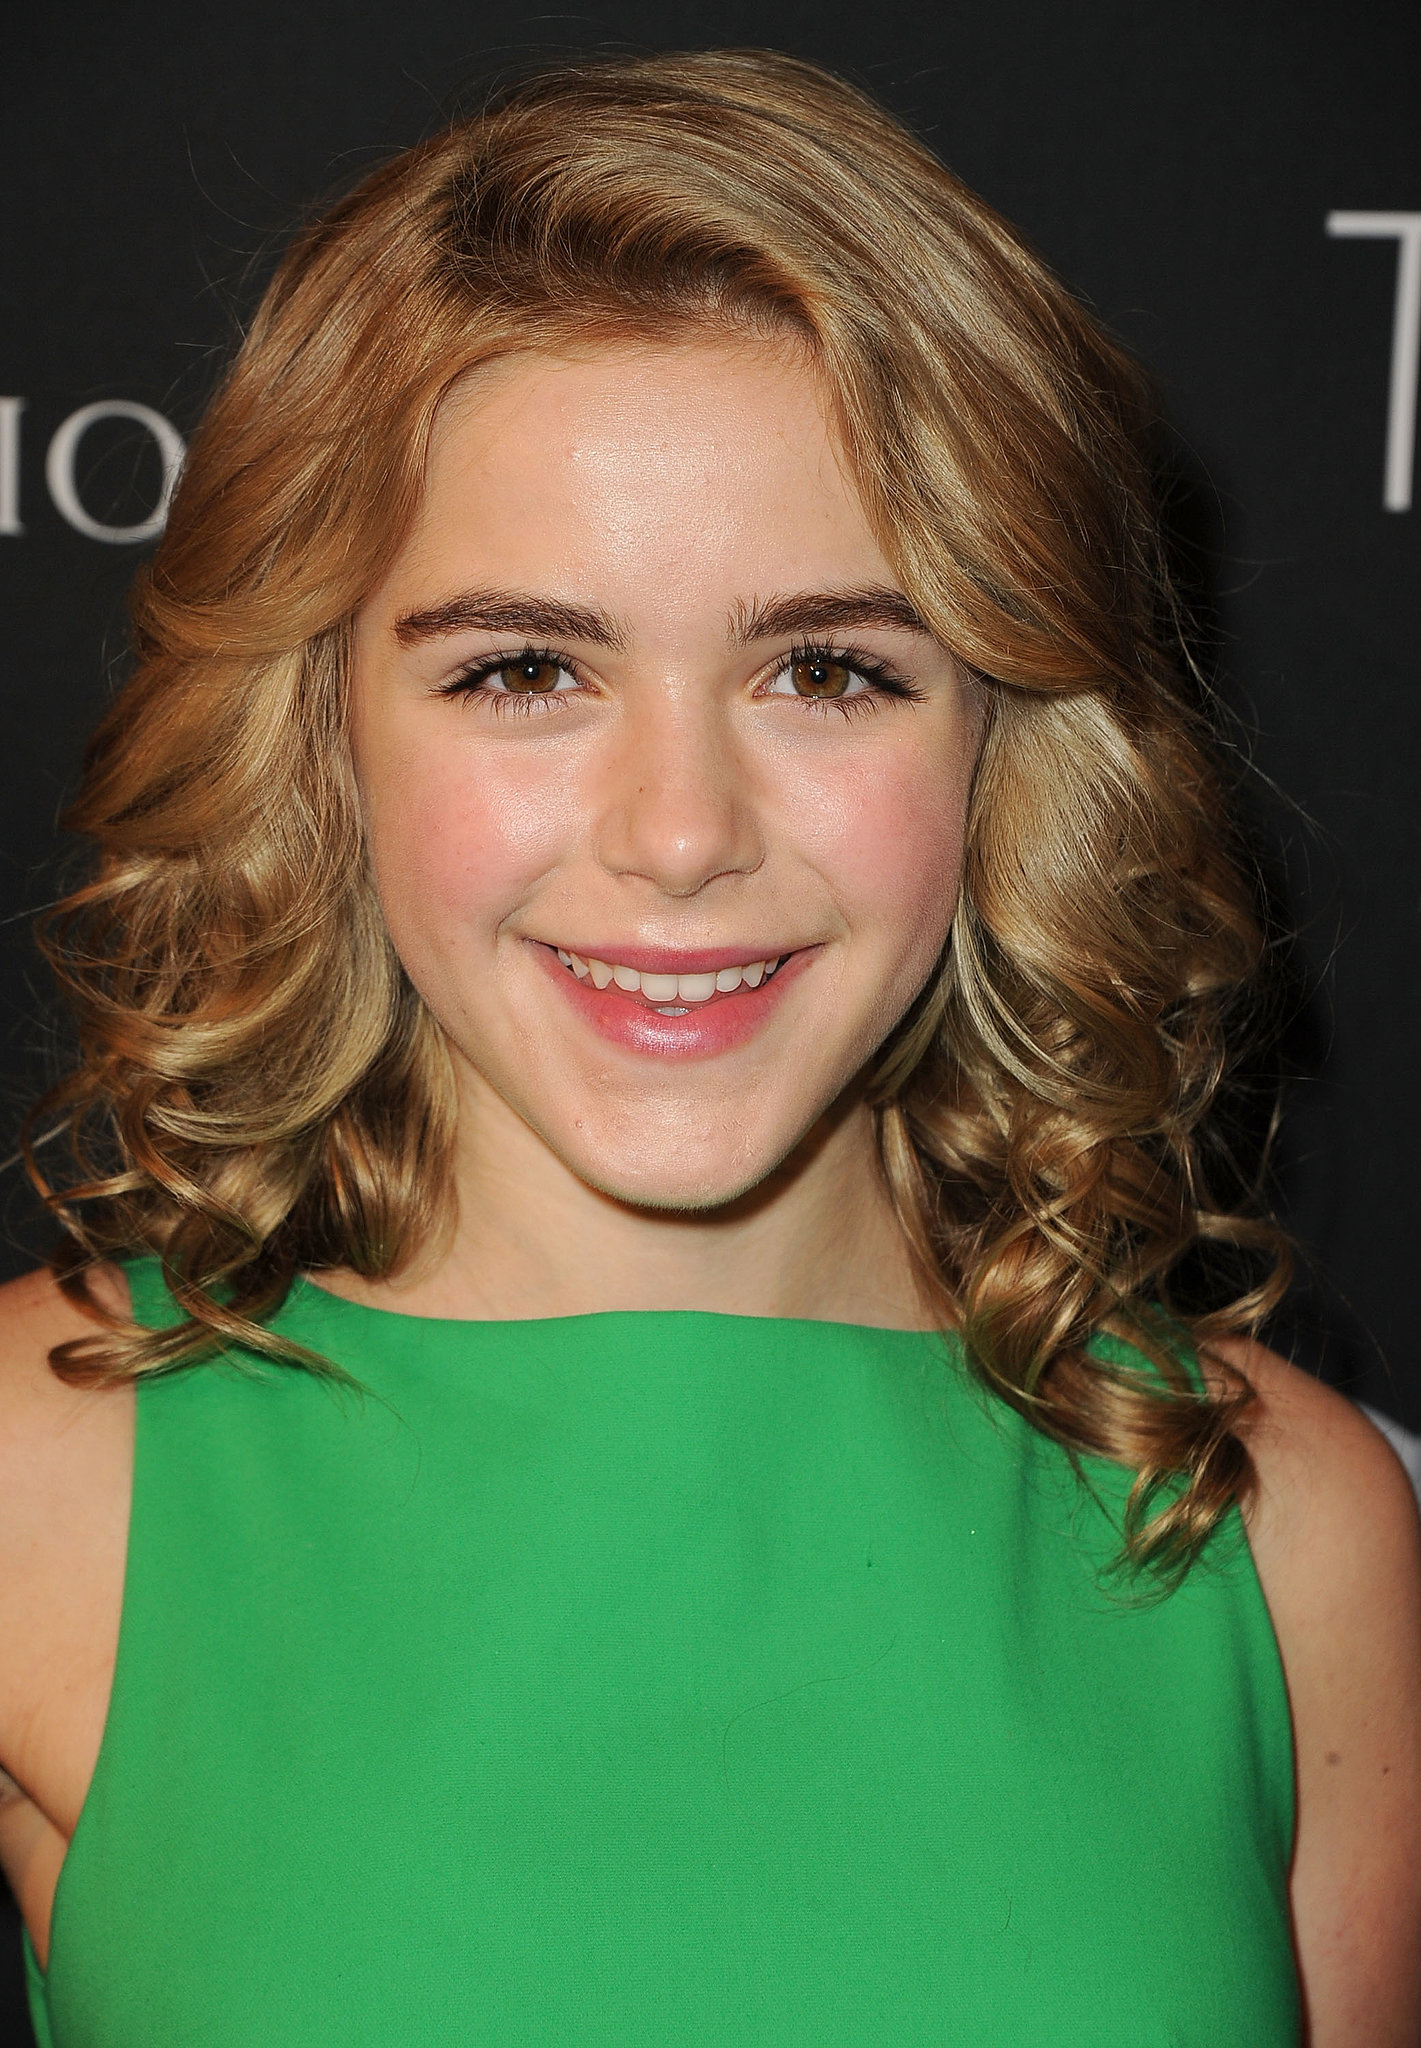 For her appearance at the BAFTA LA TV Tea, Kiernan Shipka wore a head full of curls and rosy makeup tones.